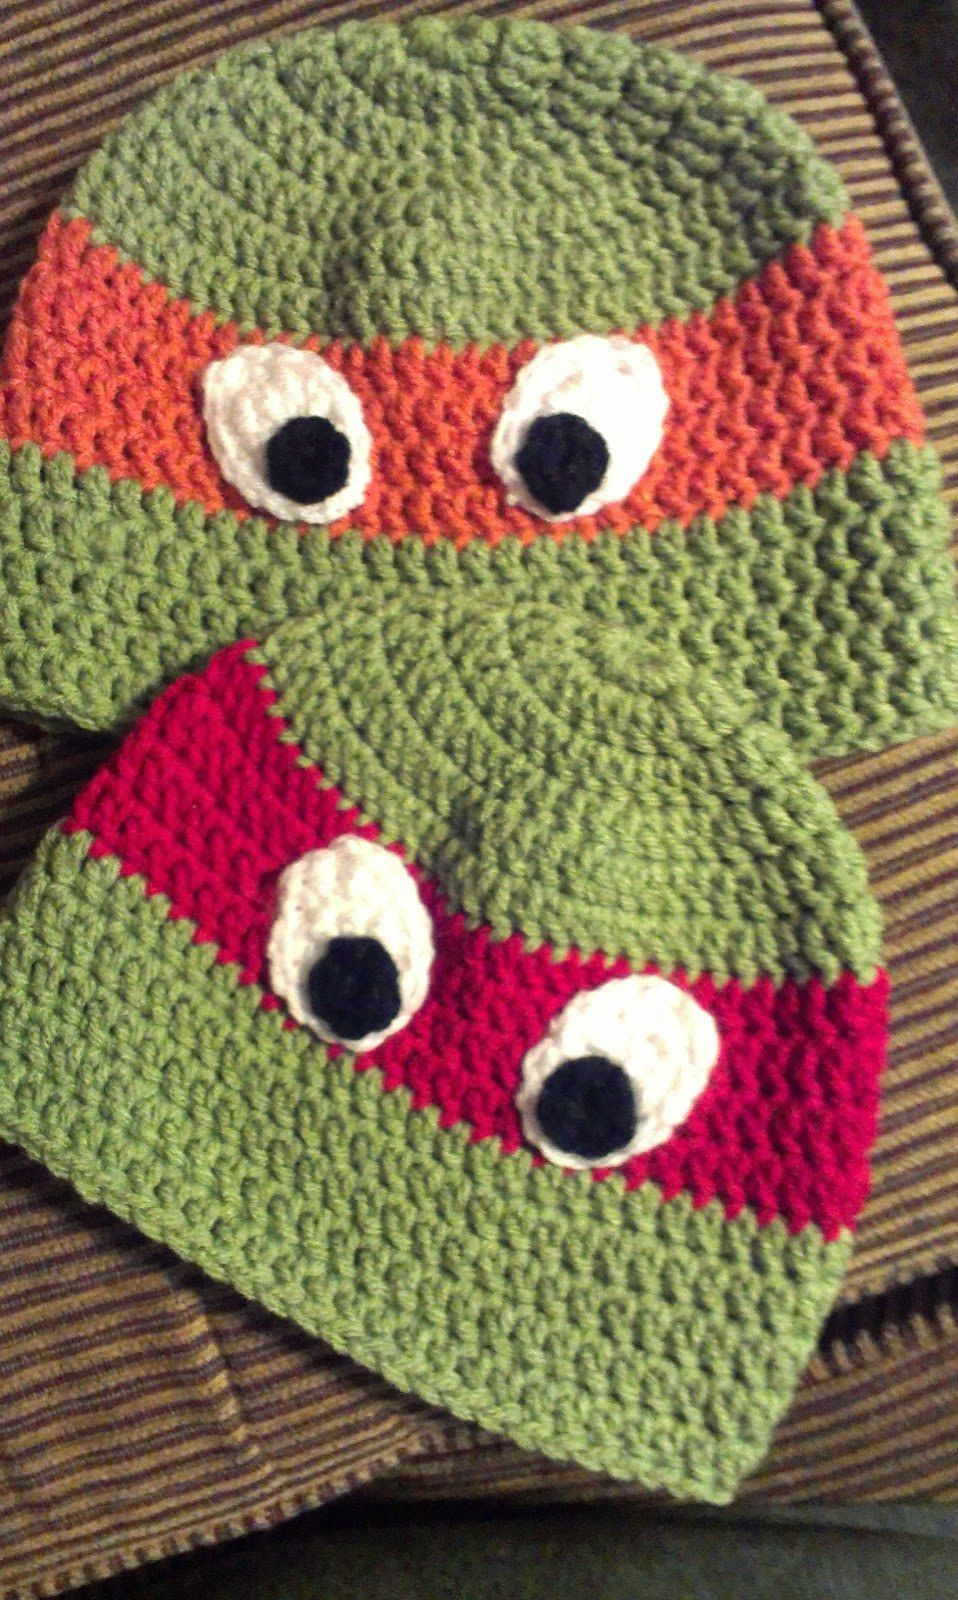 Ninja Crochet Pattern Free Tutorials and Great Ideas | Kleidung